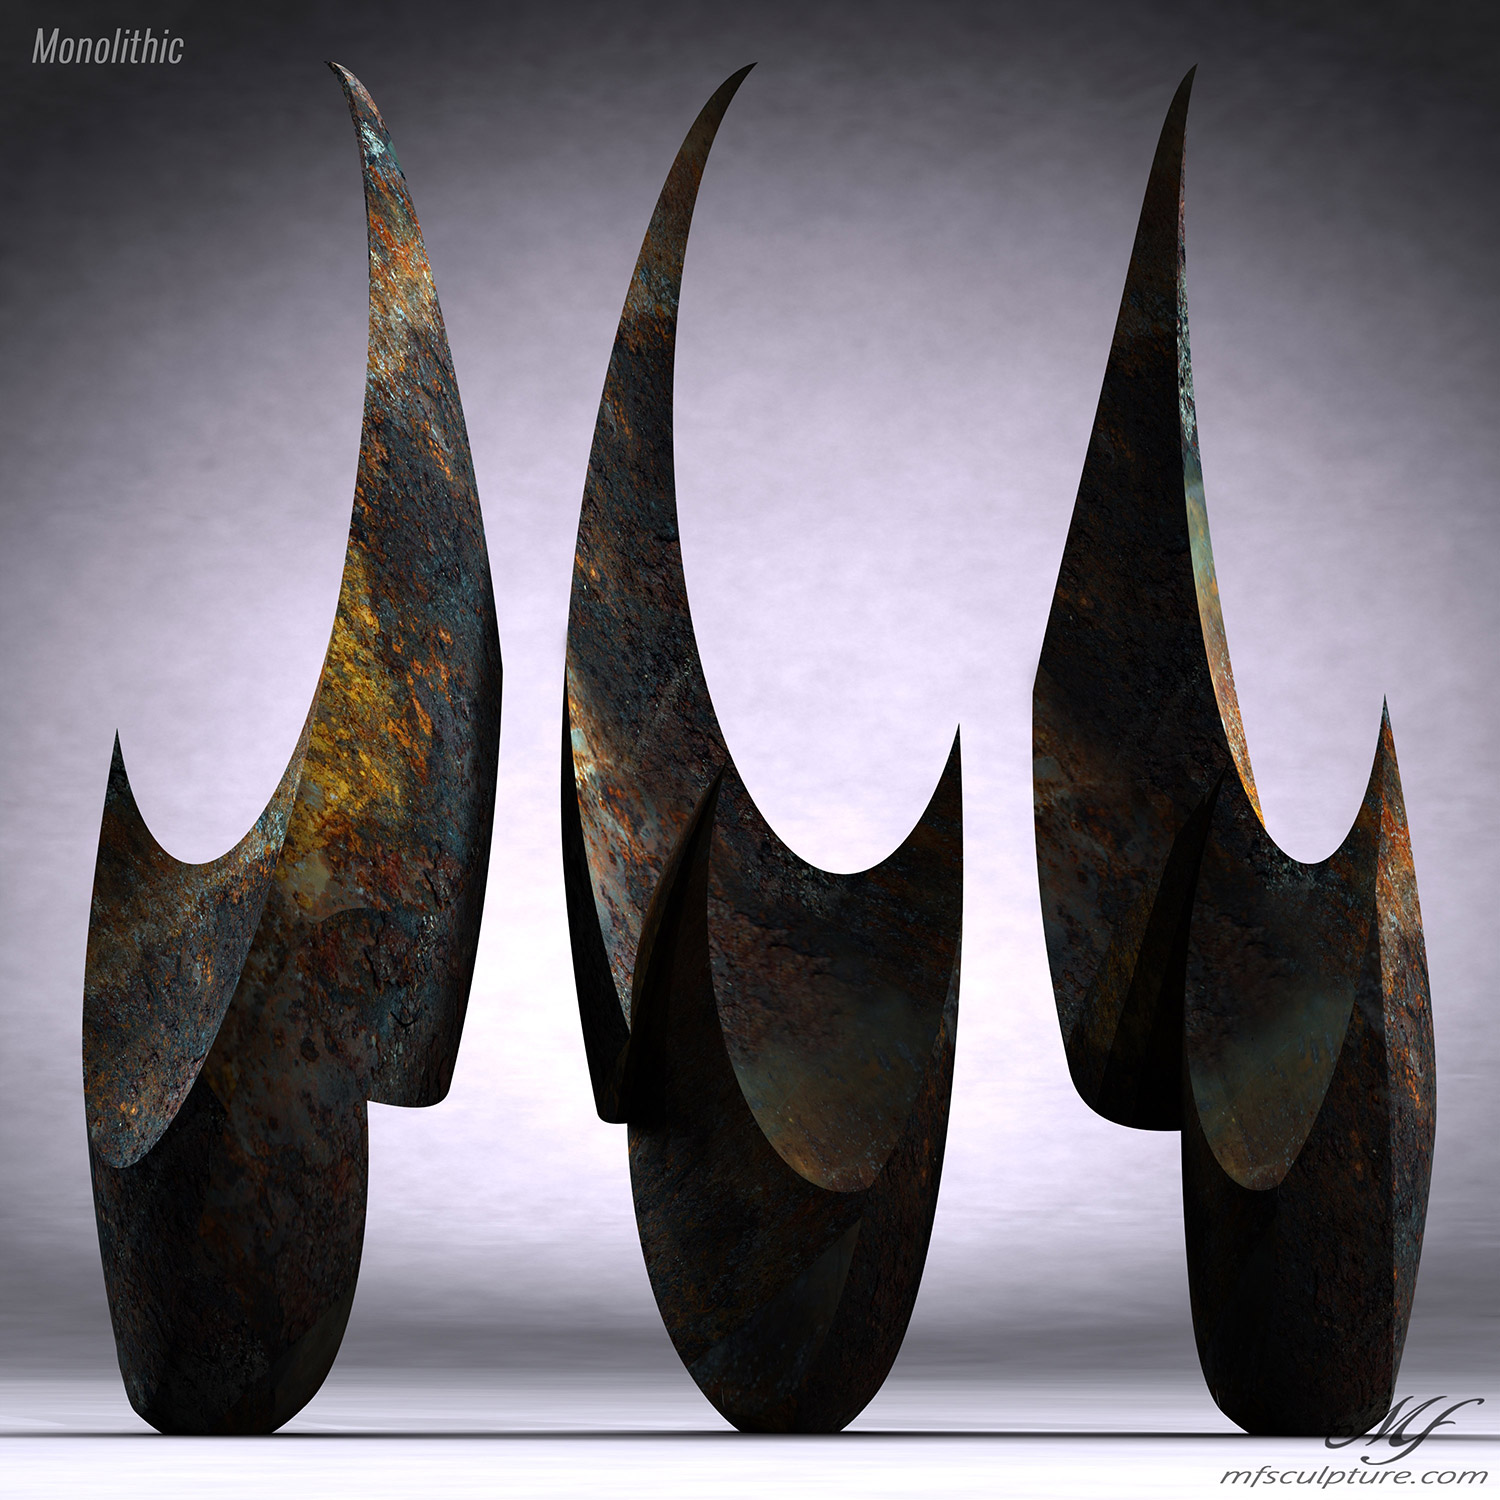 Monolithic Abstract Contemporary Sculpture Mike Fields 4